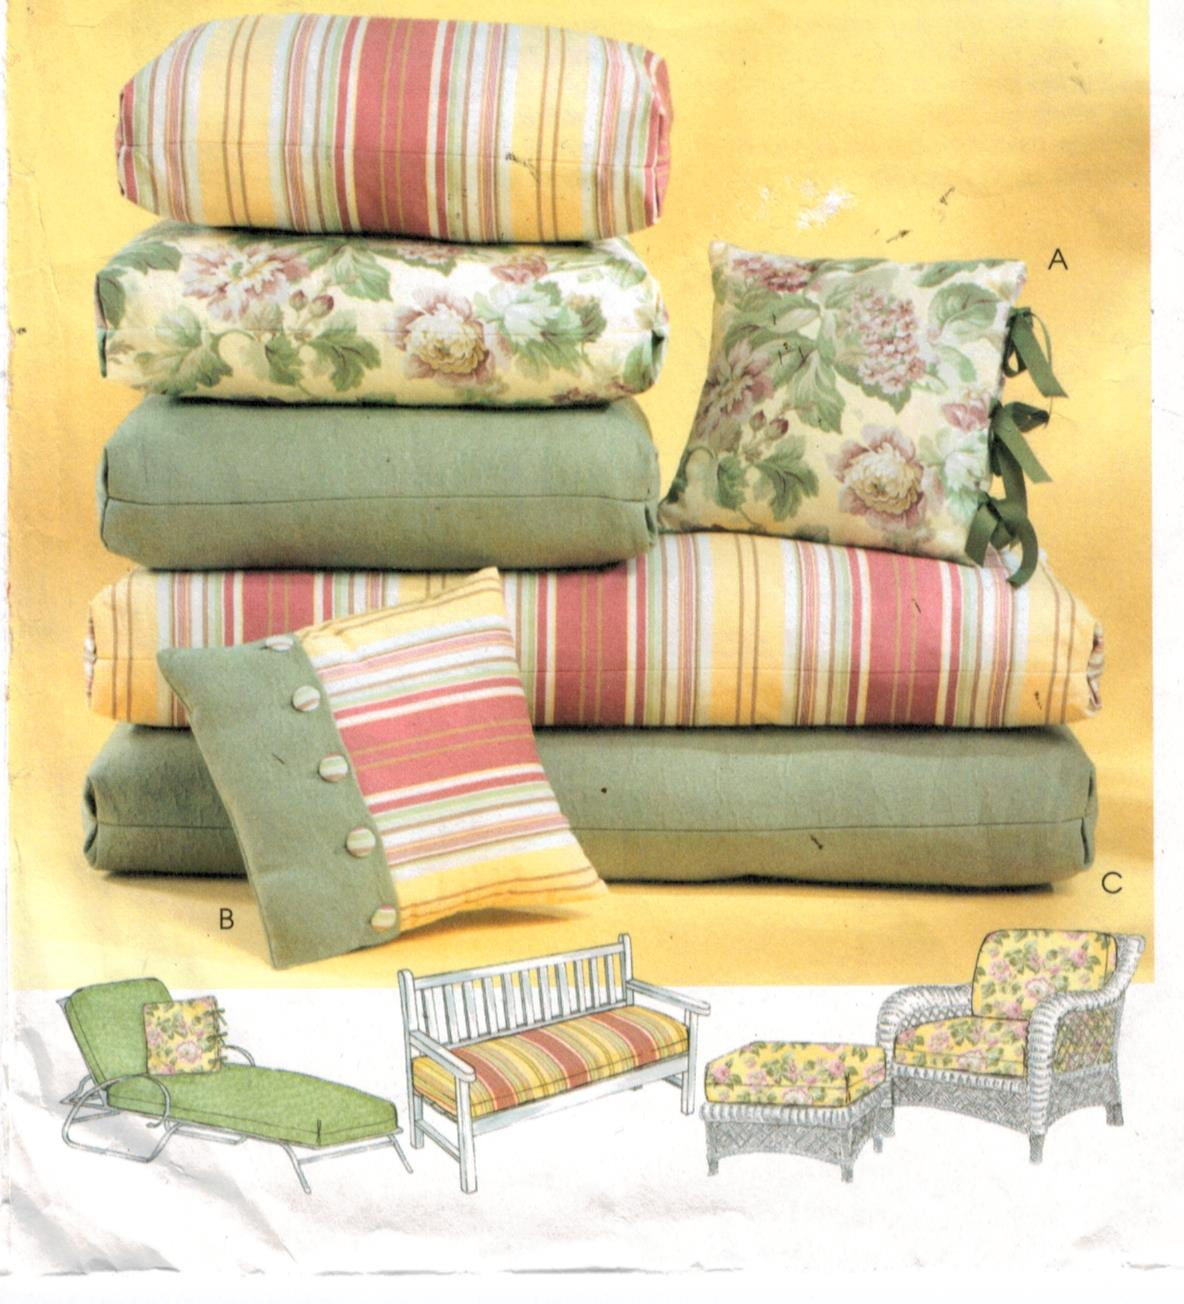 sewing patterns for patio chair cushions cowboys football helmet mccalls pattern 4124 summertime and pillows